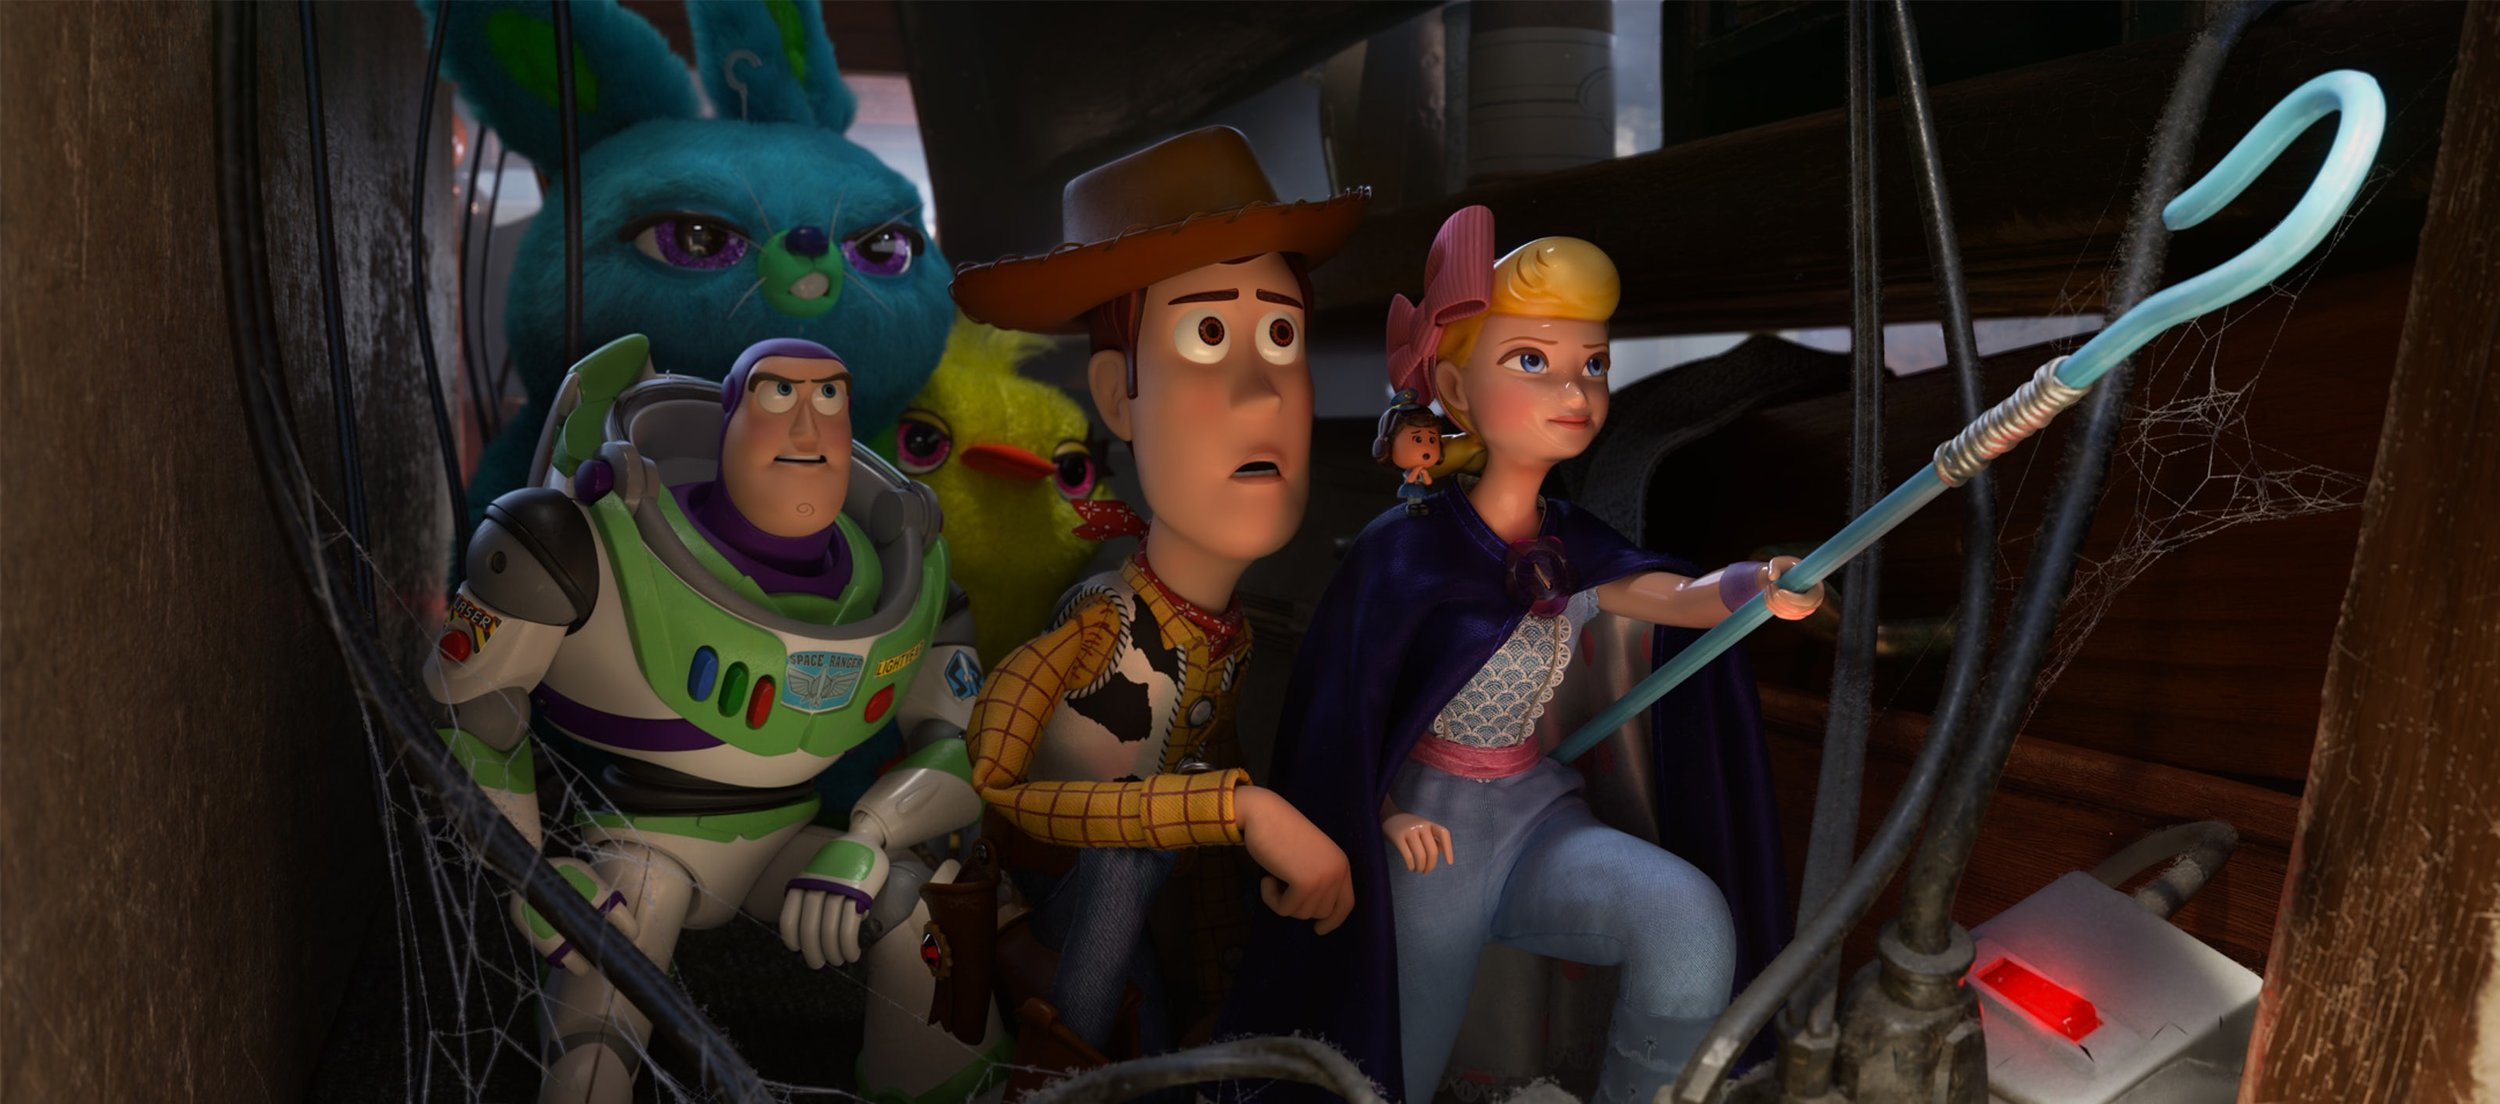 Tim Allen, Keegan Michael-Key, Jordan Peele, Tom Hanks, Ally Maki, and Annie Potts in  Toy Story 4  | Walt Disney Studios Motion Pictures